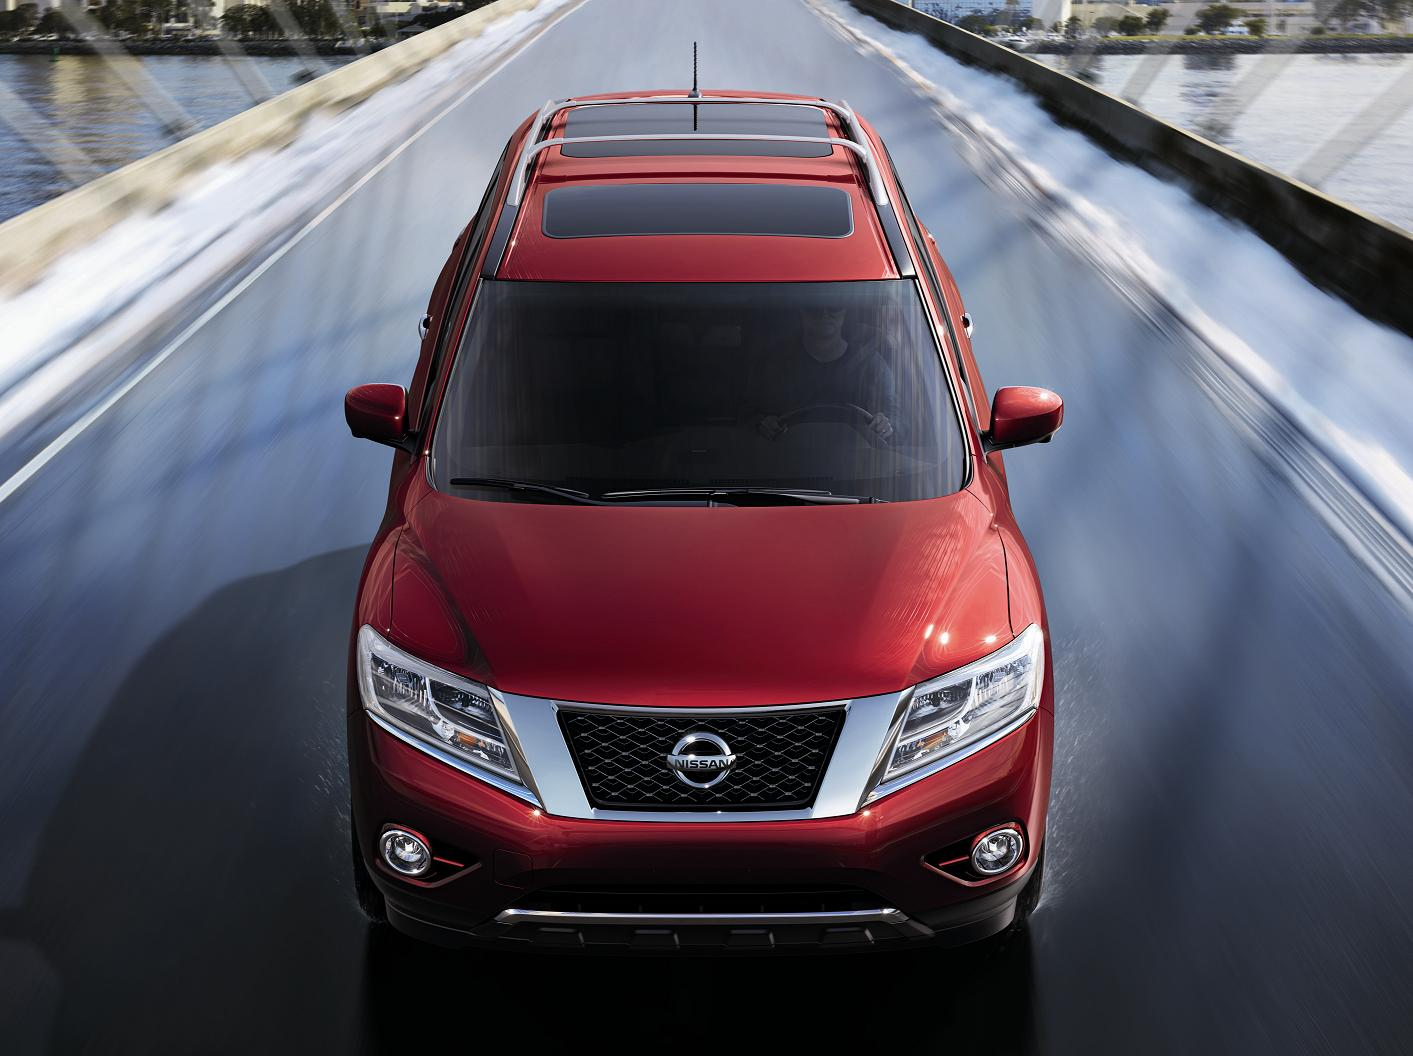 U2022Nissan Rogue Crossover Sales Set A New April Record At 11,904 Units, An  Increase Of 39 Percent Over The Prior April.